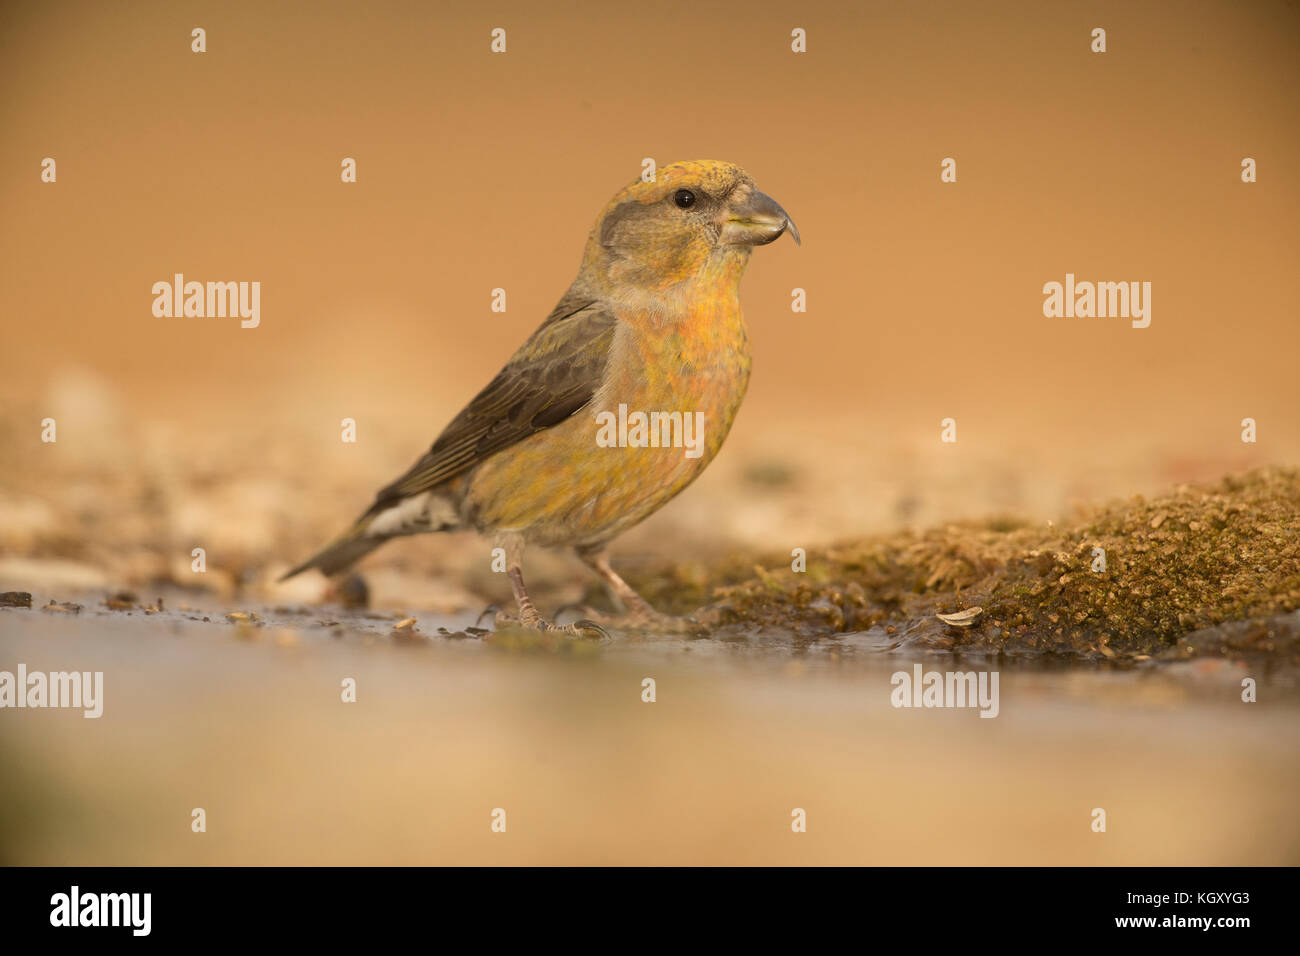 Loxia curvirostra, Crossbill,  Animal,Wildlife, Bird,Vertebrate, Spain,  Teruel,  Winter, True Finch, Passerine, - Stock Image